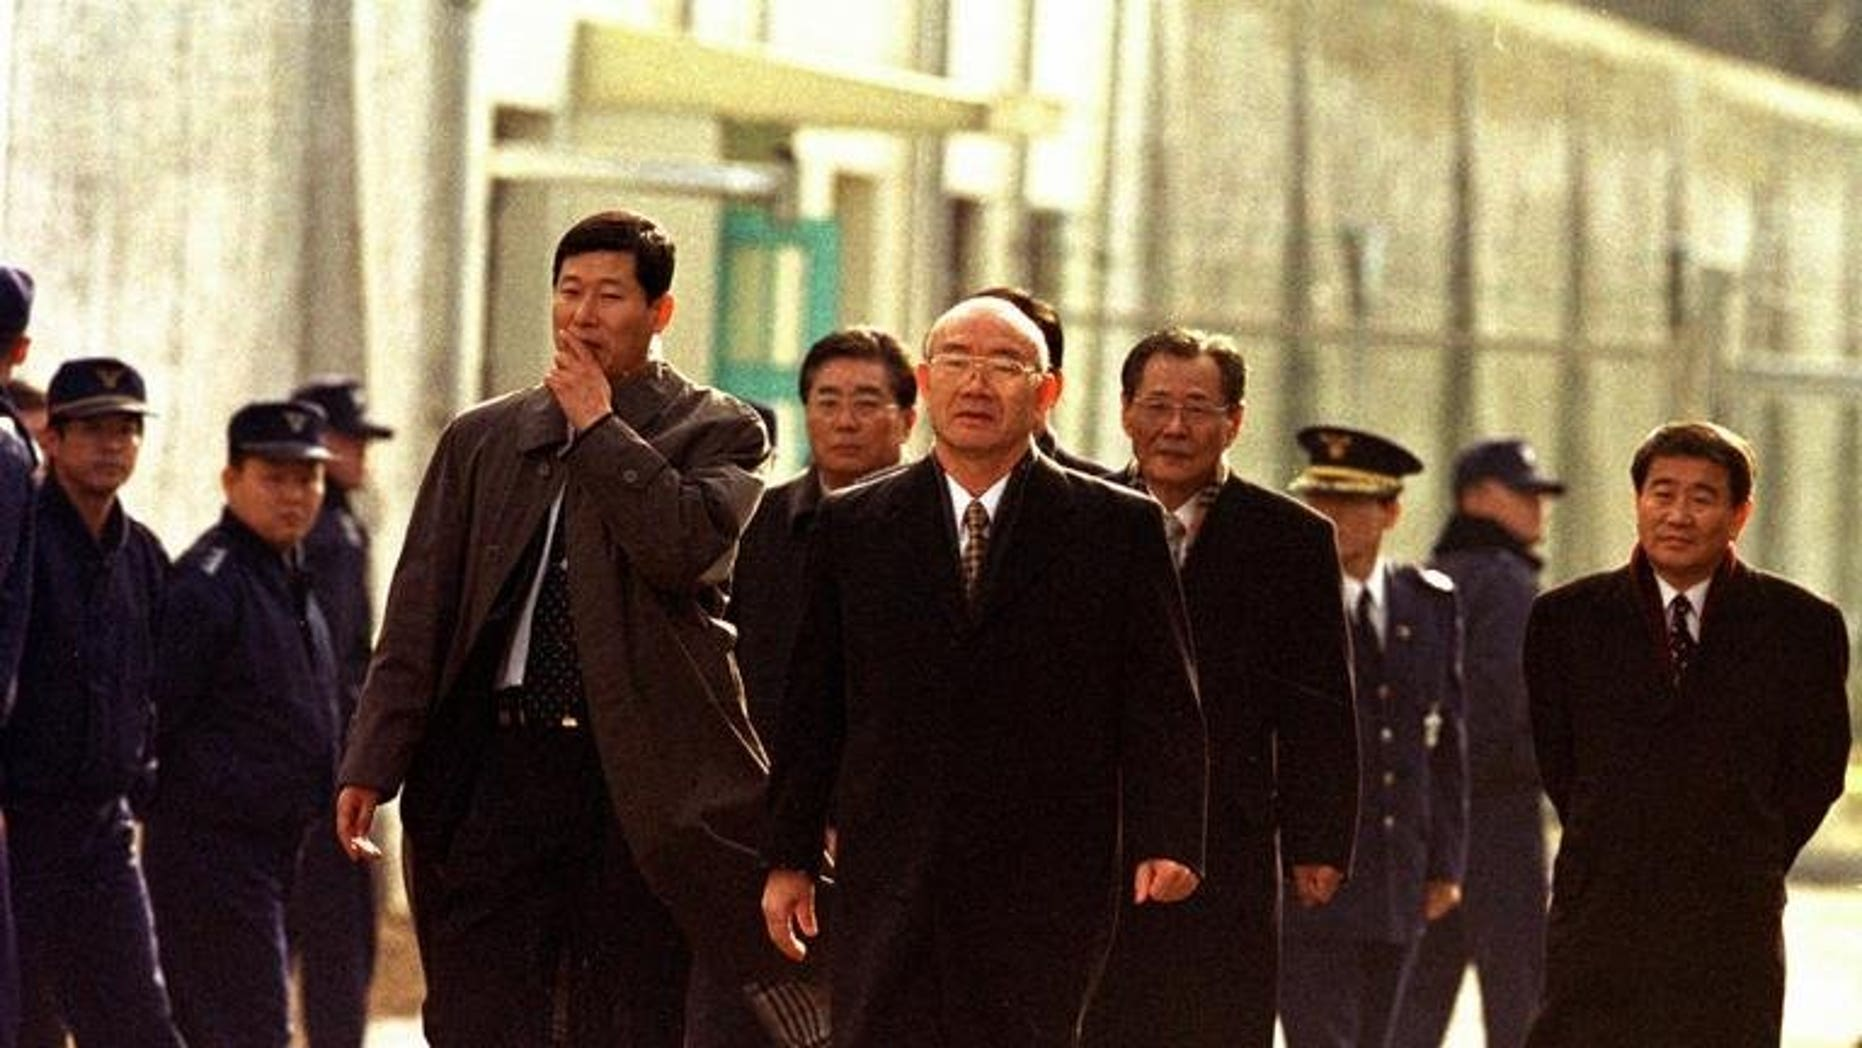 Former South Korean president Chun Doo-Hwan, 65, walks to freedom in 1997 after two years in Anyang Prison for corruption, mutiny and treason. The family of former South Korean dictator Chun Doo-Hwan promised Tuesday to pay millions of dollars in remaining fines imposed for bribes the disgraced military strongman took while in office.